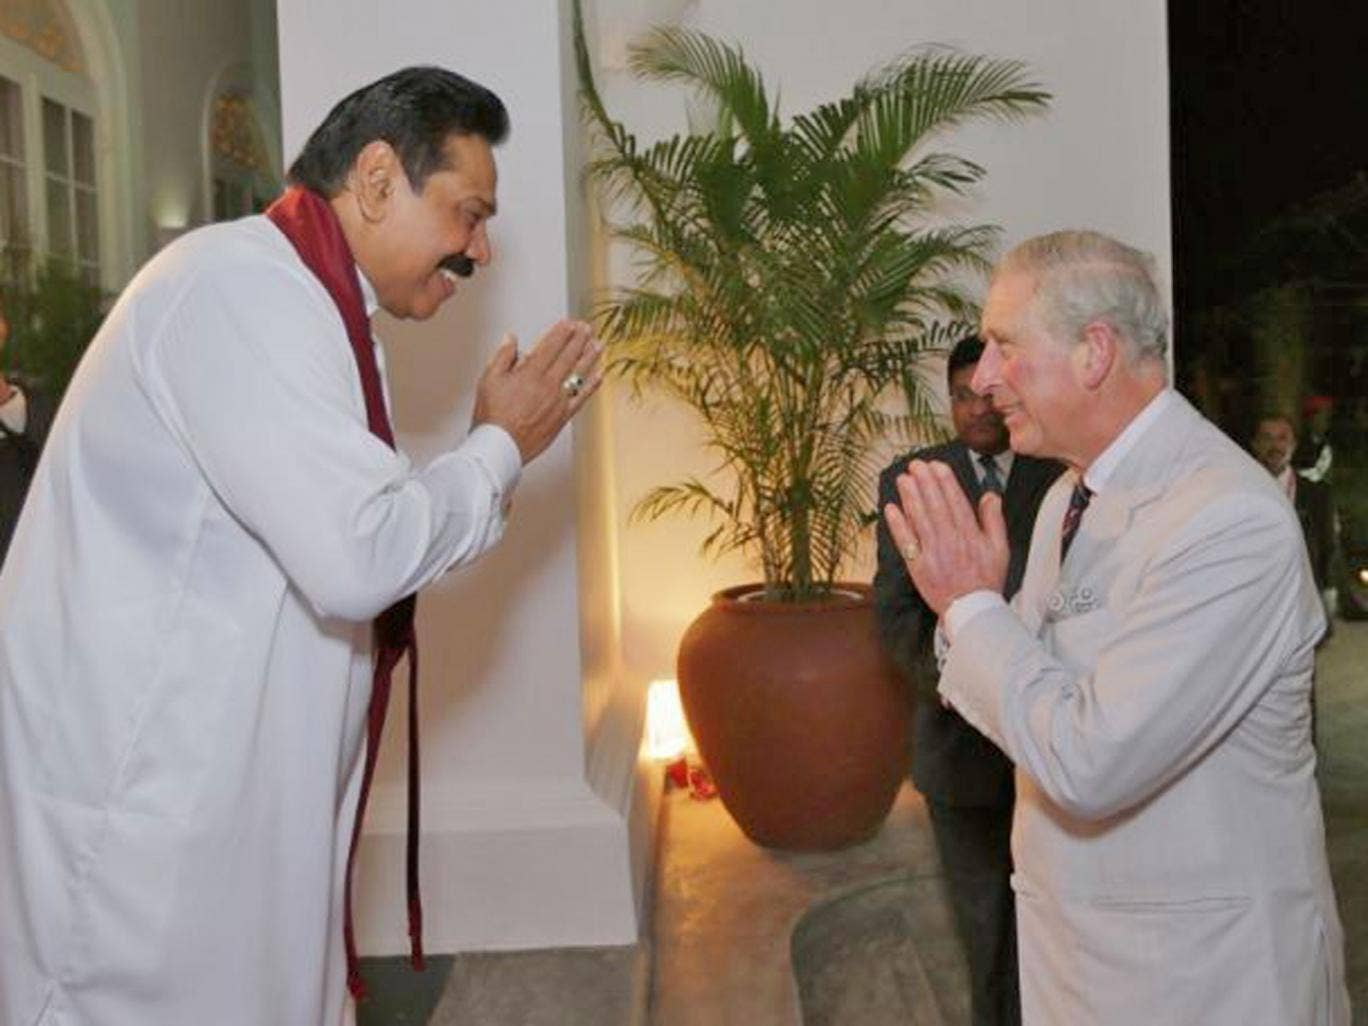 14 November 2013: Sri Lankan President Mahinda Rajapaksa greets Prince Charles during a reception at the President's House in Colombo, Sri Lanka. The Royal couple are visiting Sri Lanka in order to attend the 2013 Commonwealth Heads of Government Meeting